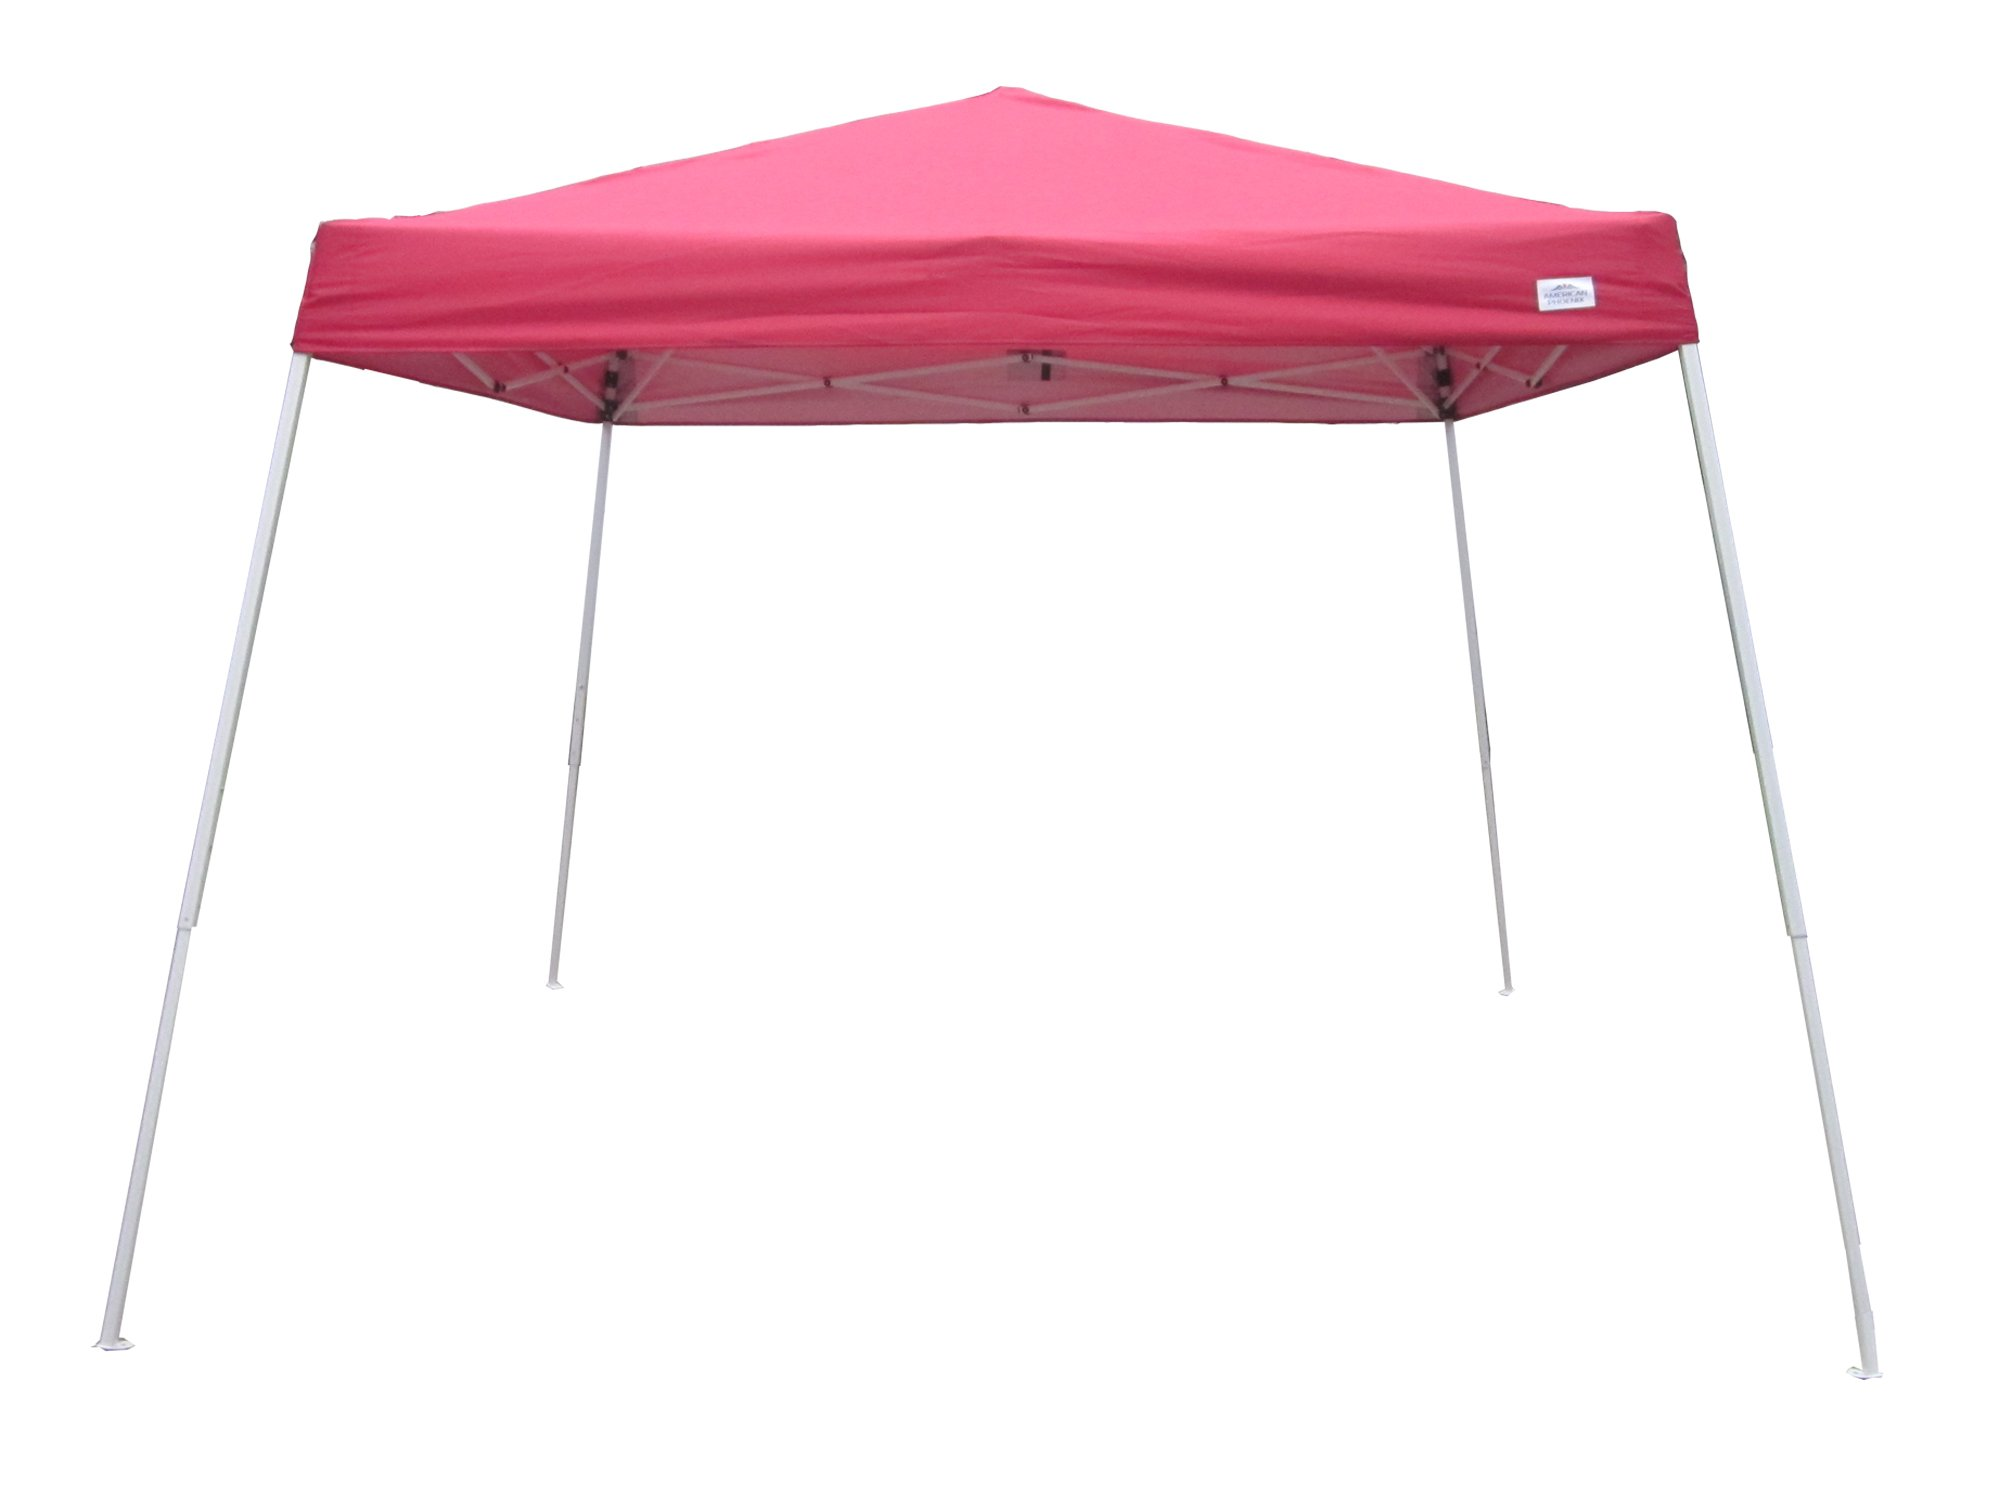 American Phoenix 5x5 Multi Color [Slant Leg][White Frame ] Light Weight Portable Event Canopy Tent. Shade Commercial Party Canopy tent Easy Pop Up (Red)